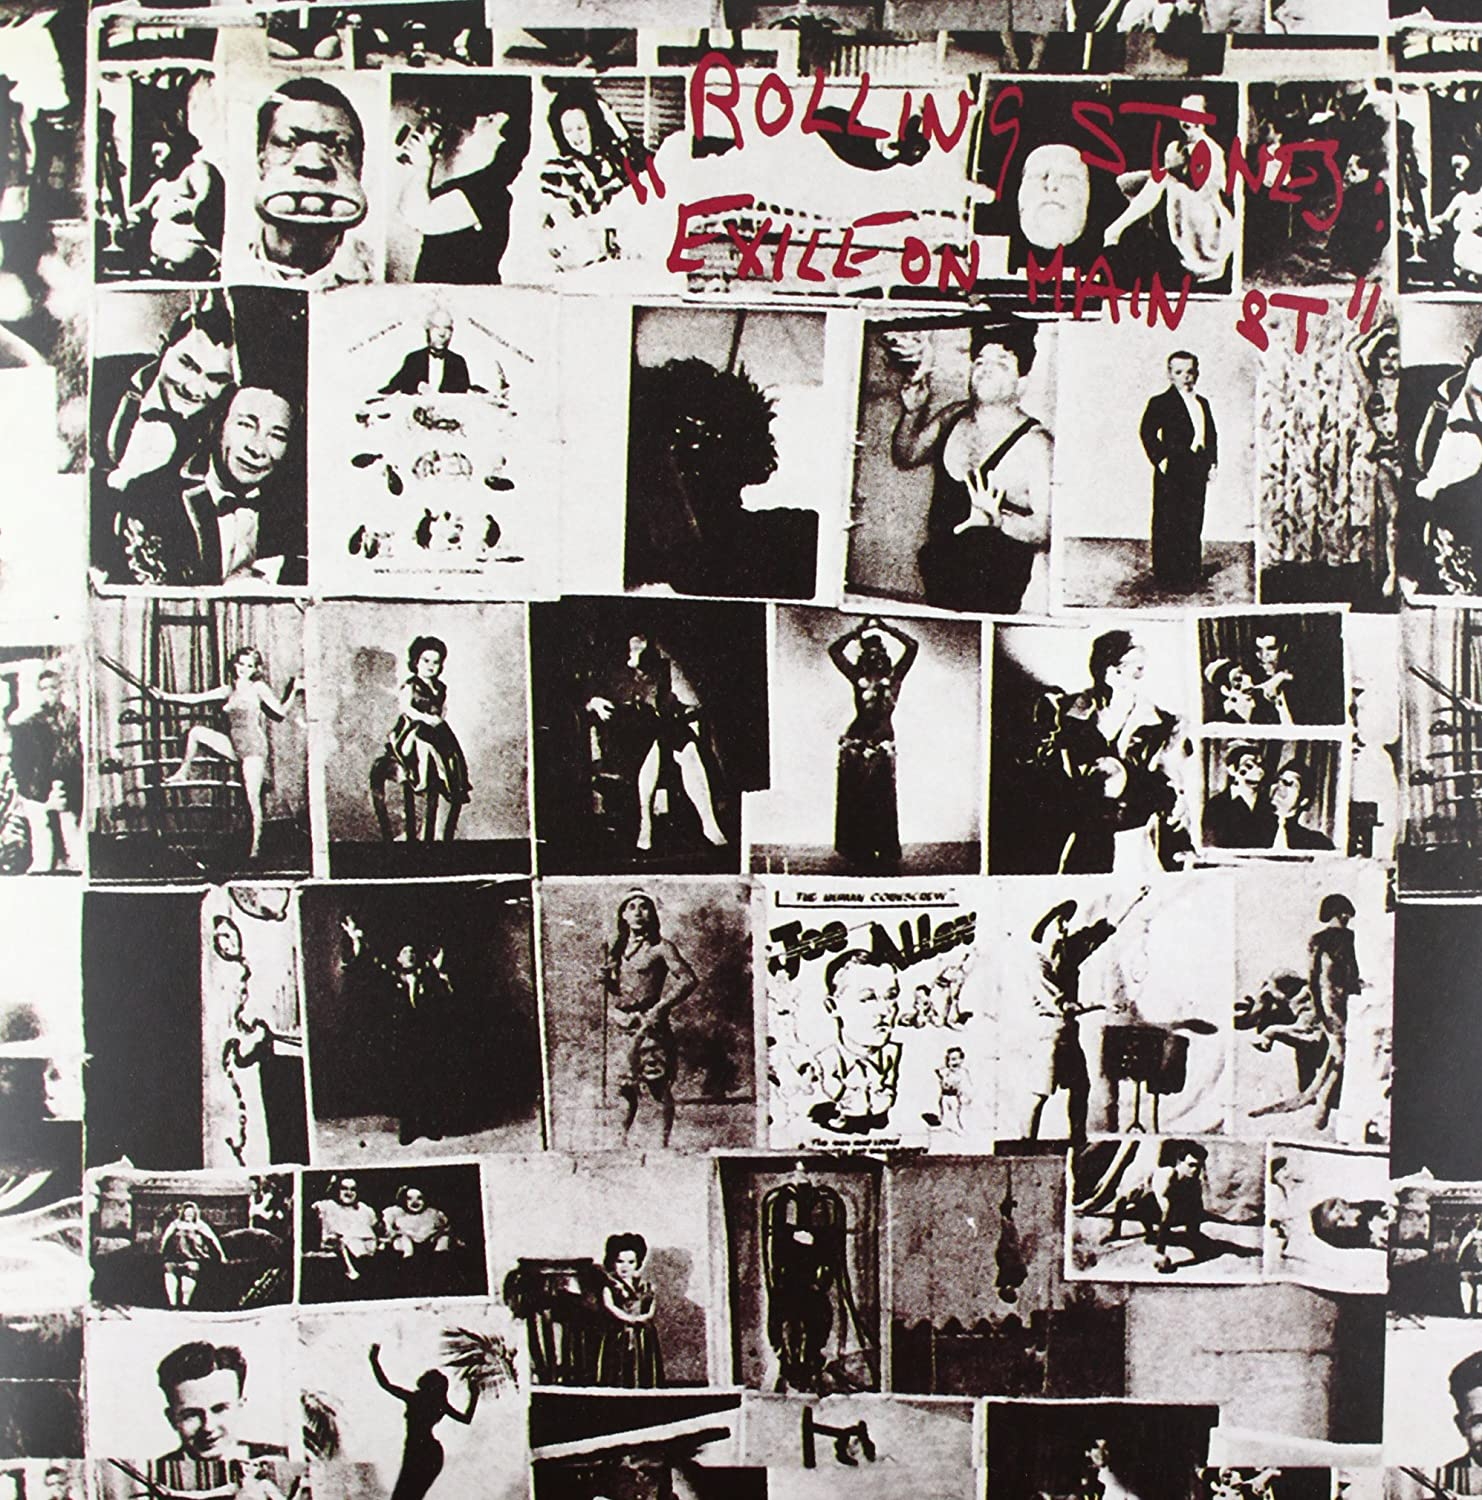 The Rolling Stones Exile on Main St